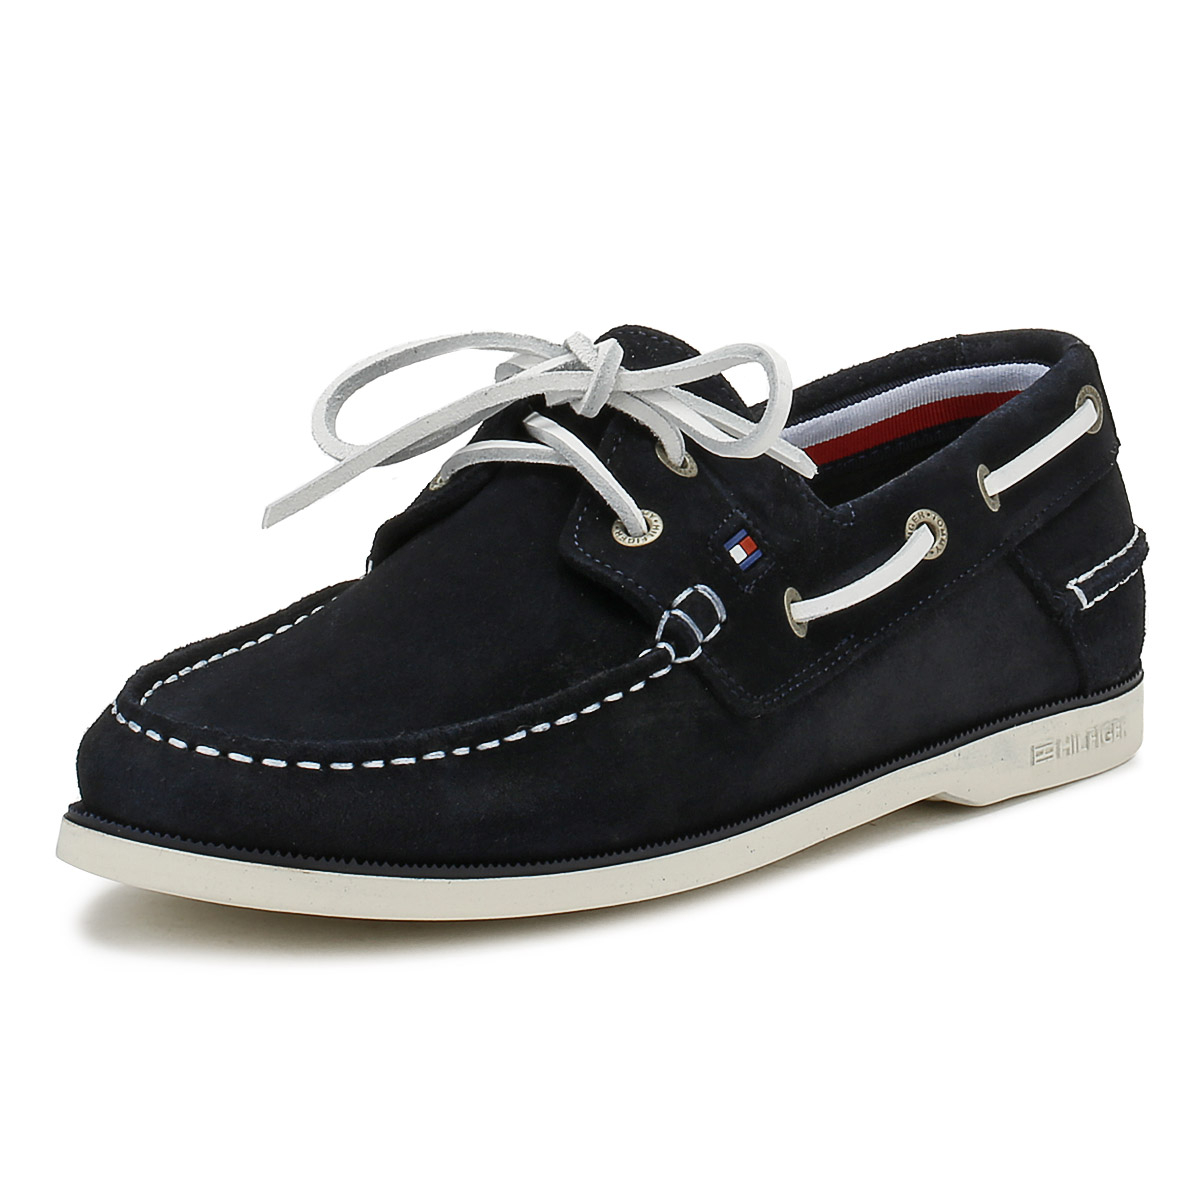 70a7a3e9a Tommy Hilfiger Mens Boat Shoes Midnight Navy Blue Classic Suede Casual